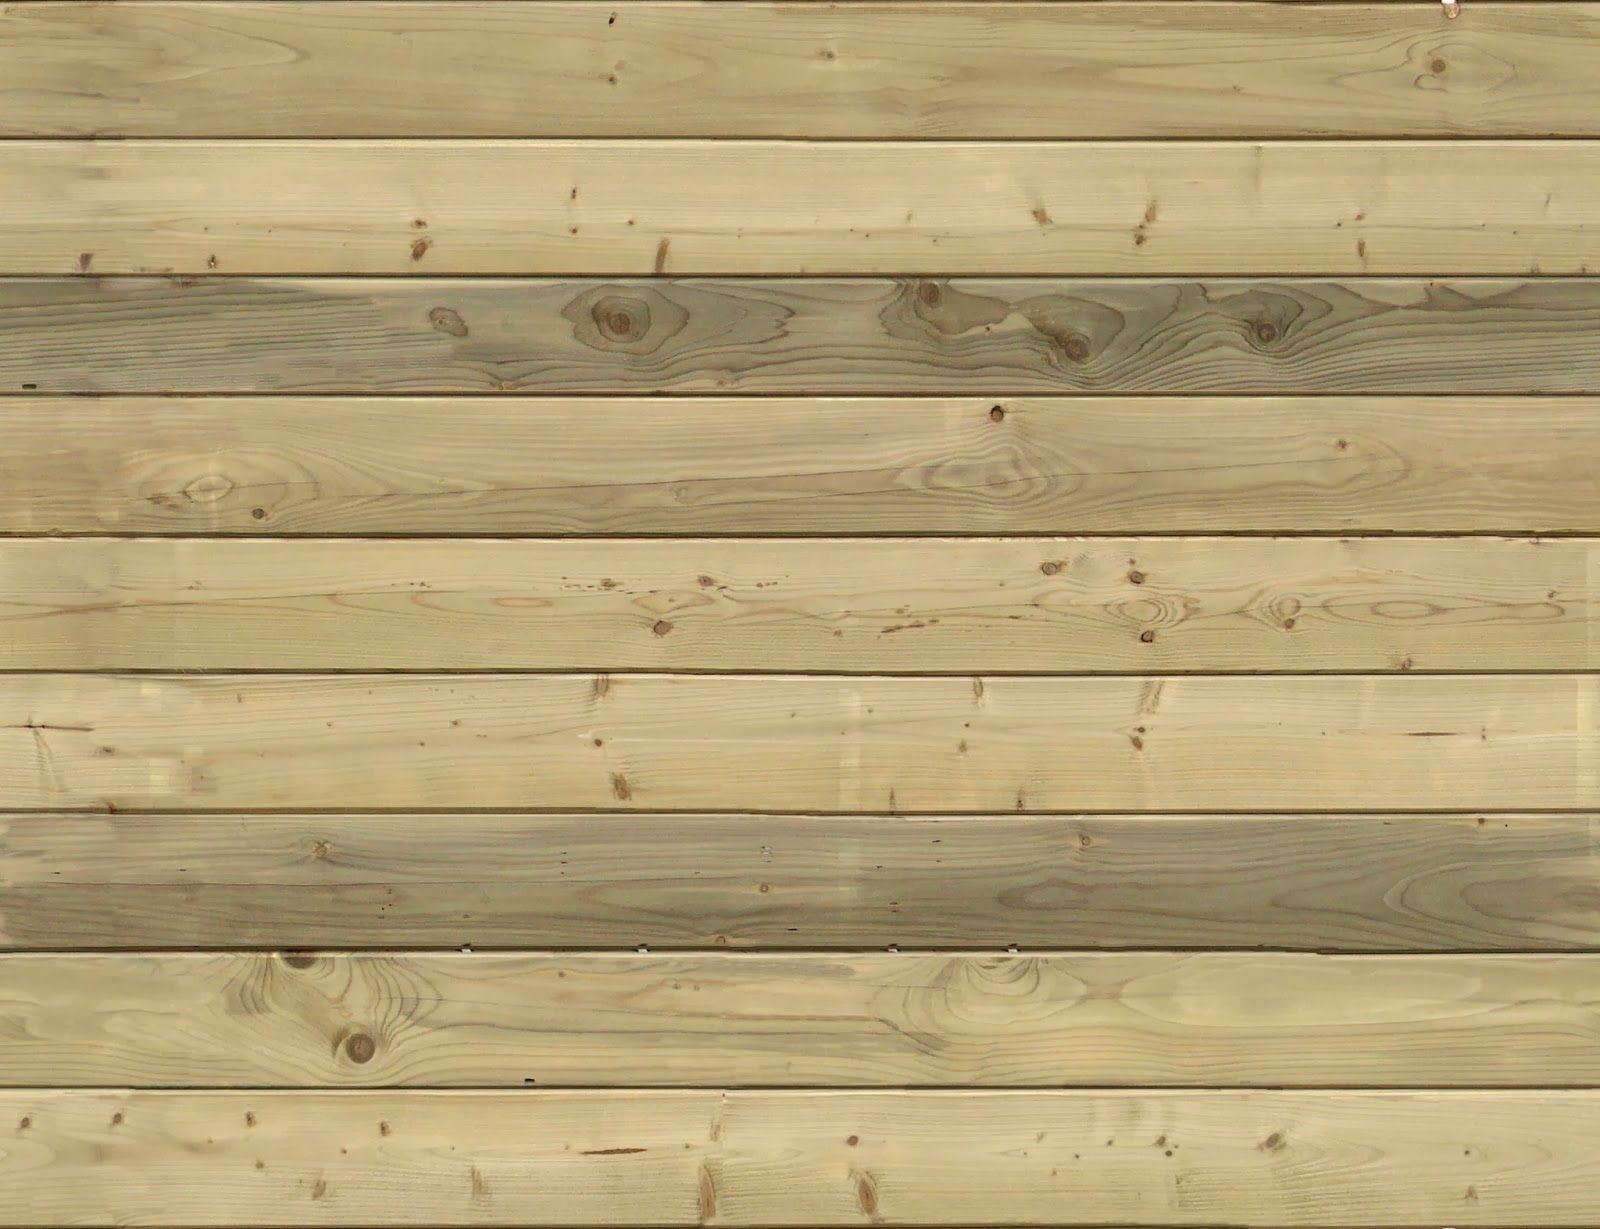 Tileable Clean Wood Planks Texture    Maps    texturise. Tileable Clean Wood Planks Texture    Maps    texturise   texturas